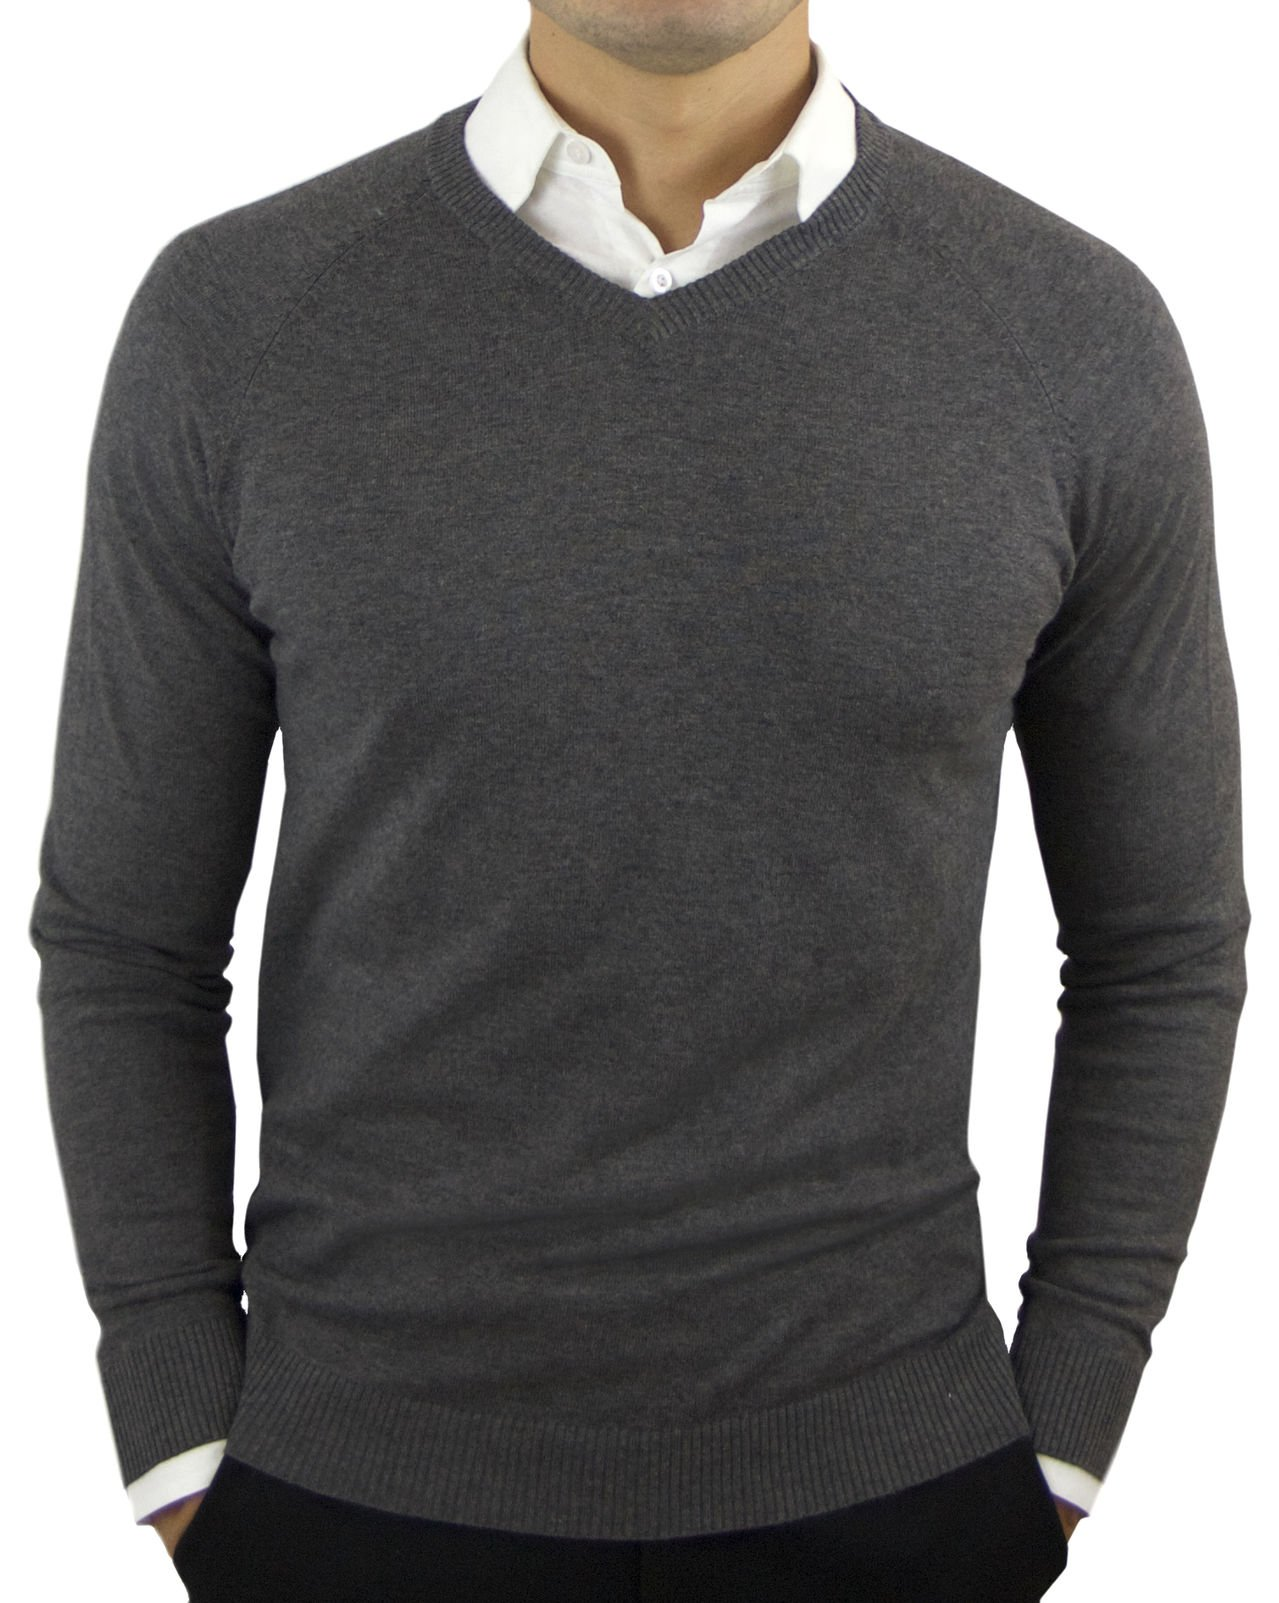 Comfortably Collared Men's Perfect Slim Fit V-Neck Sweater Extra Large Charcoal